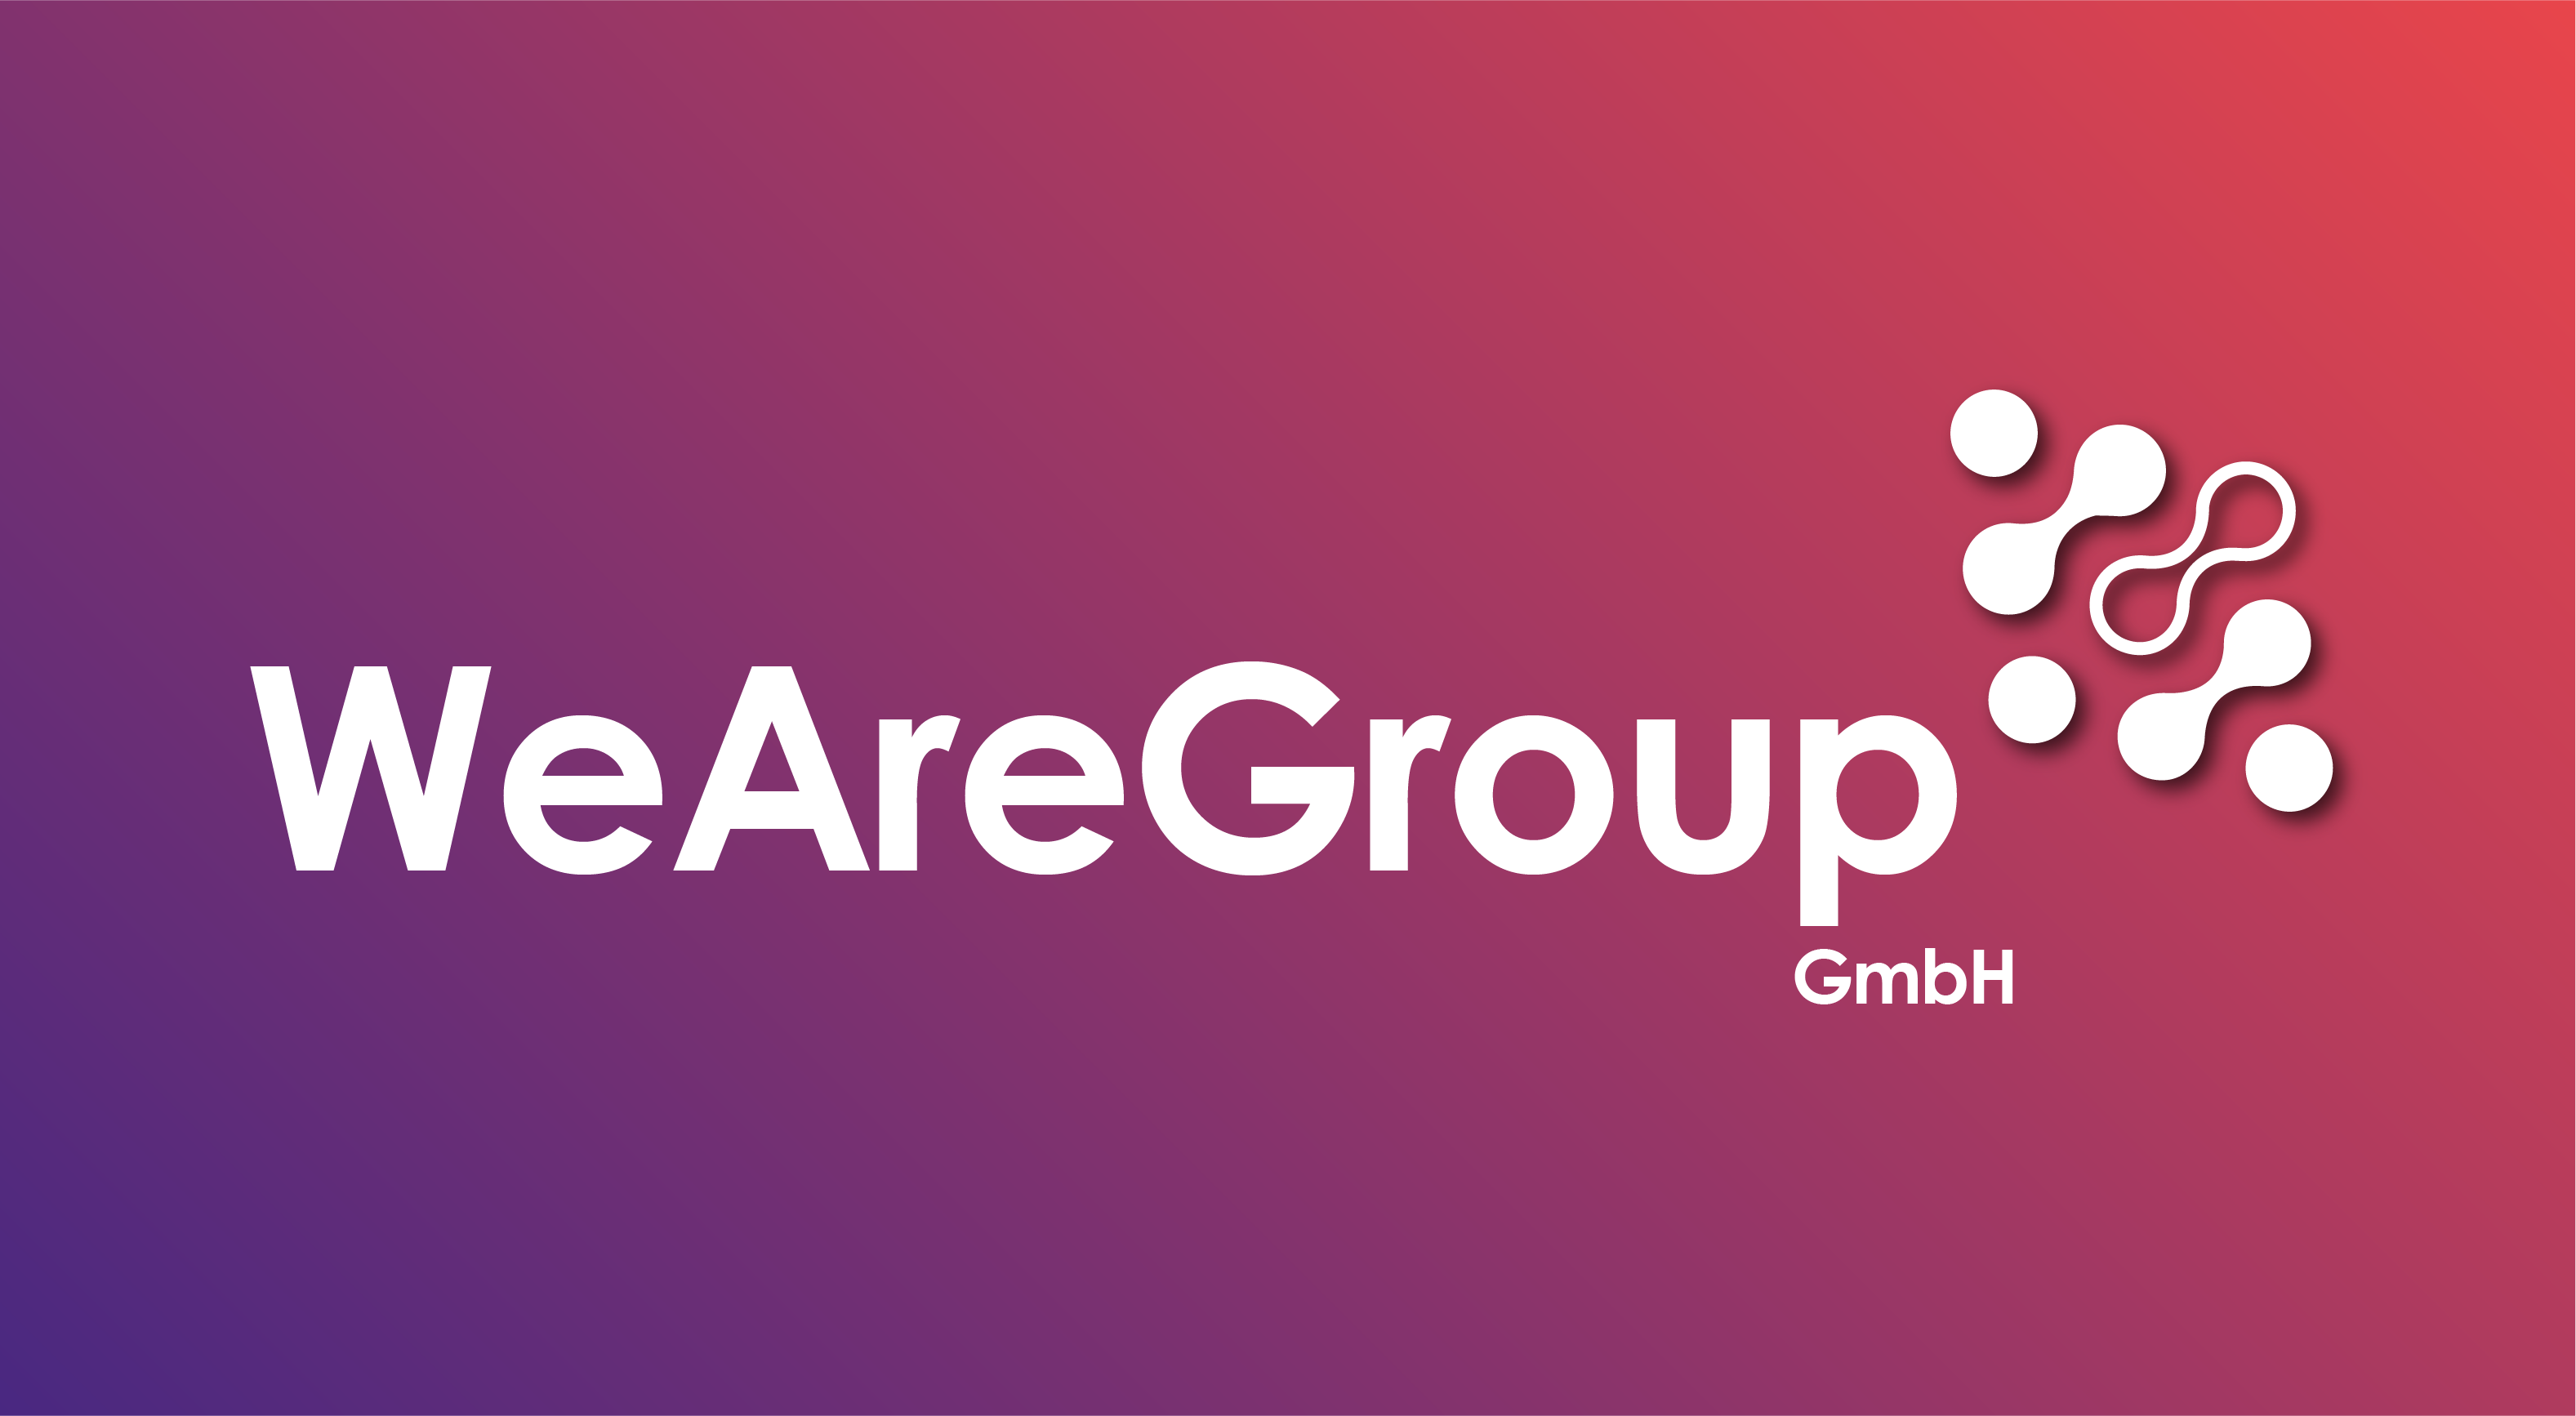 WeAreGroup